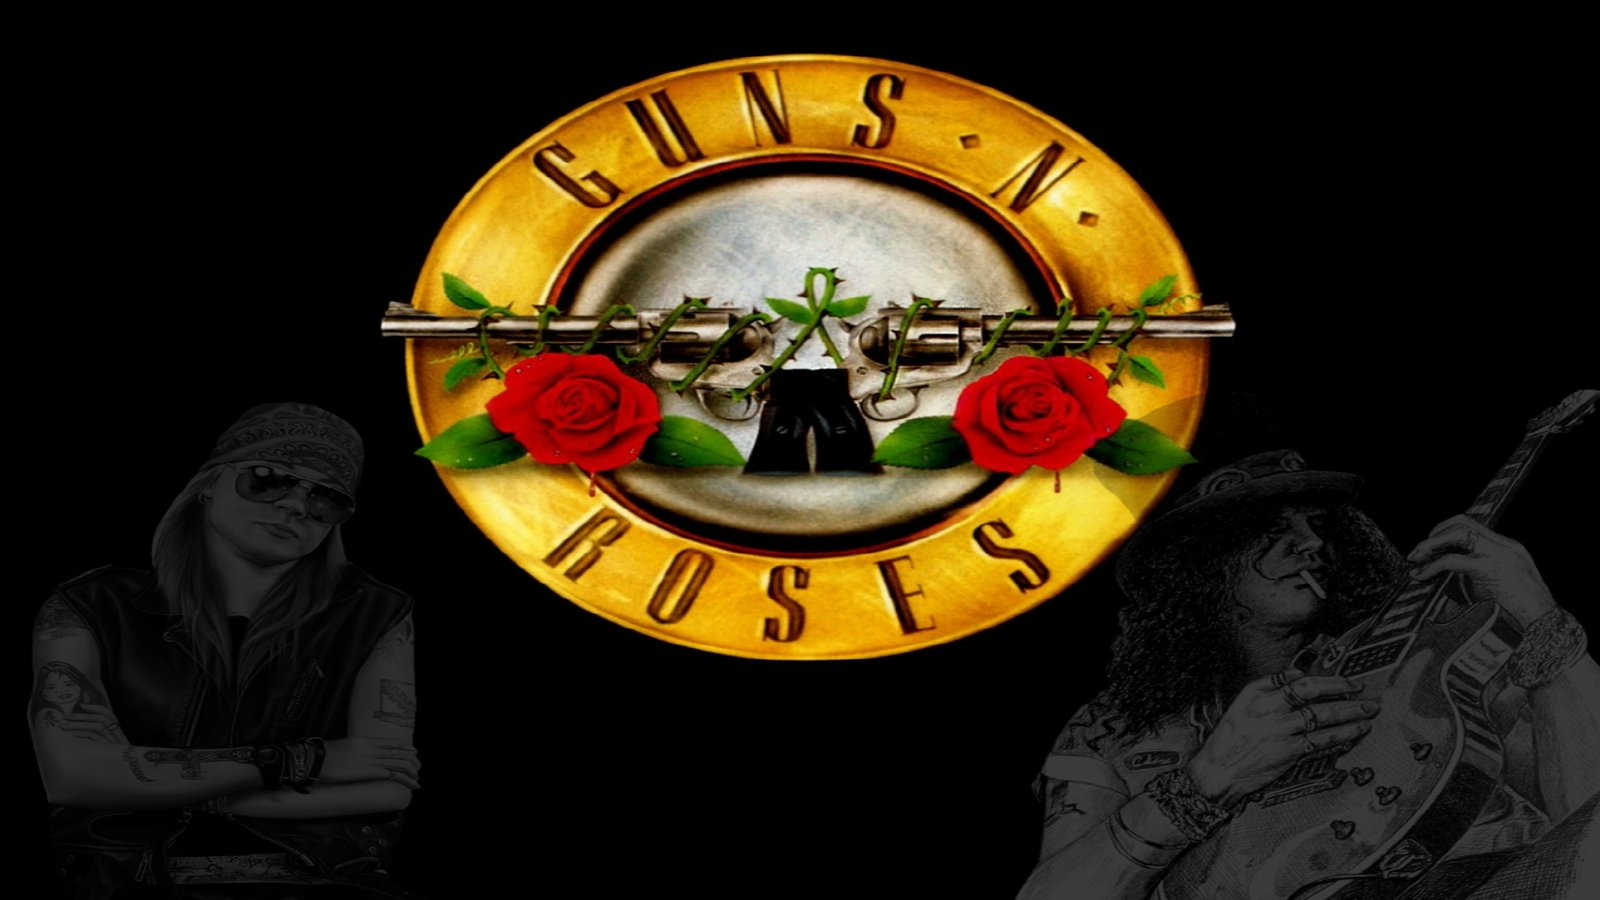 Guns amp Roses Wallpaper and Background 1600x900 ID278173 1600x900